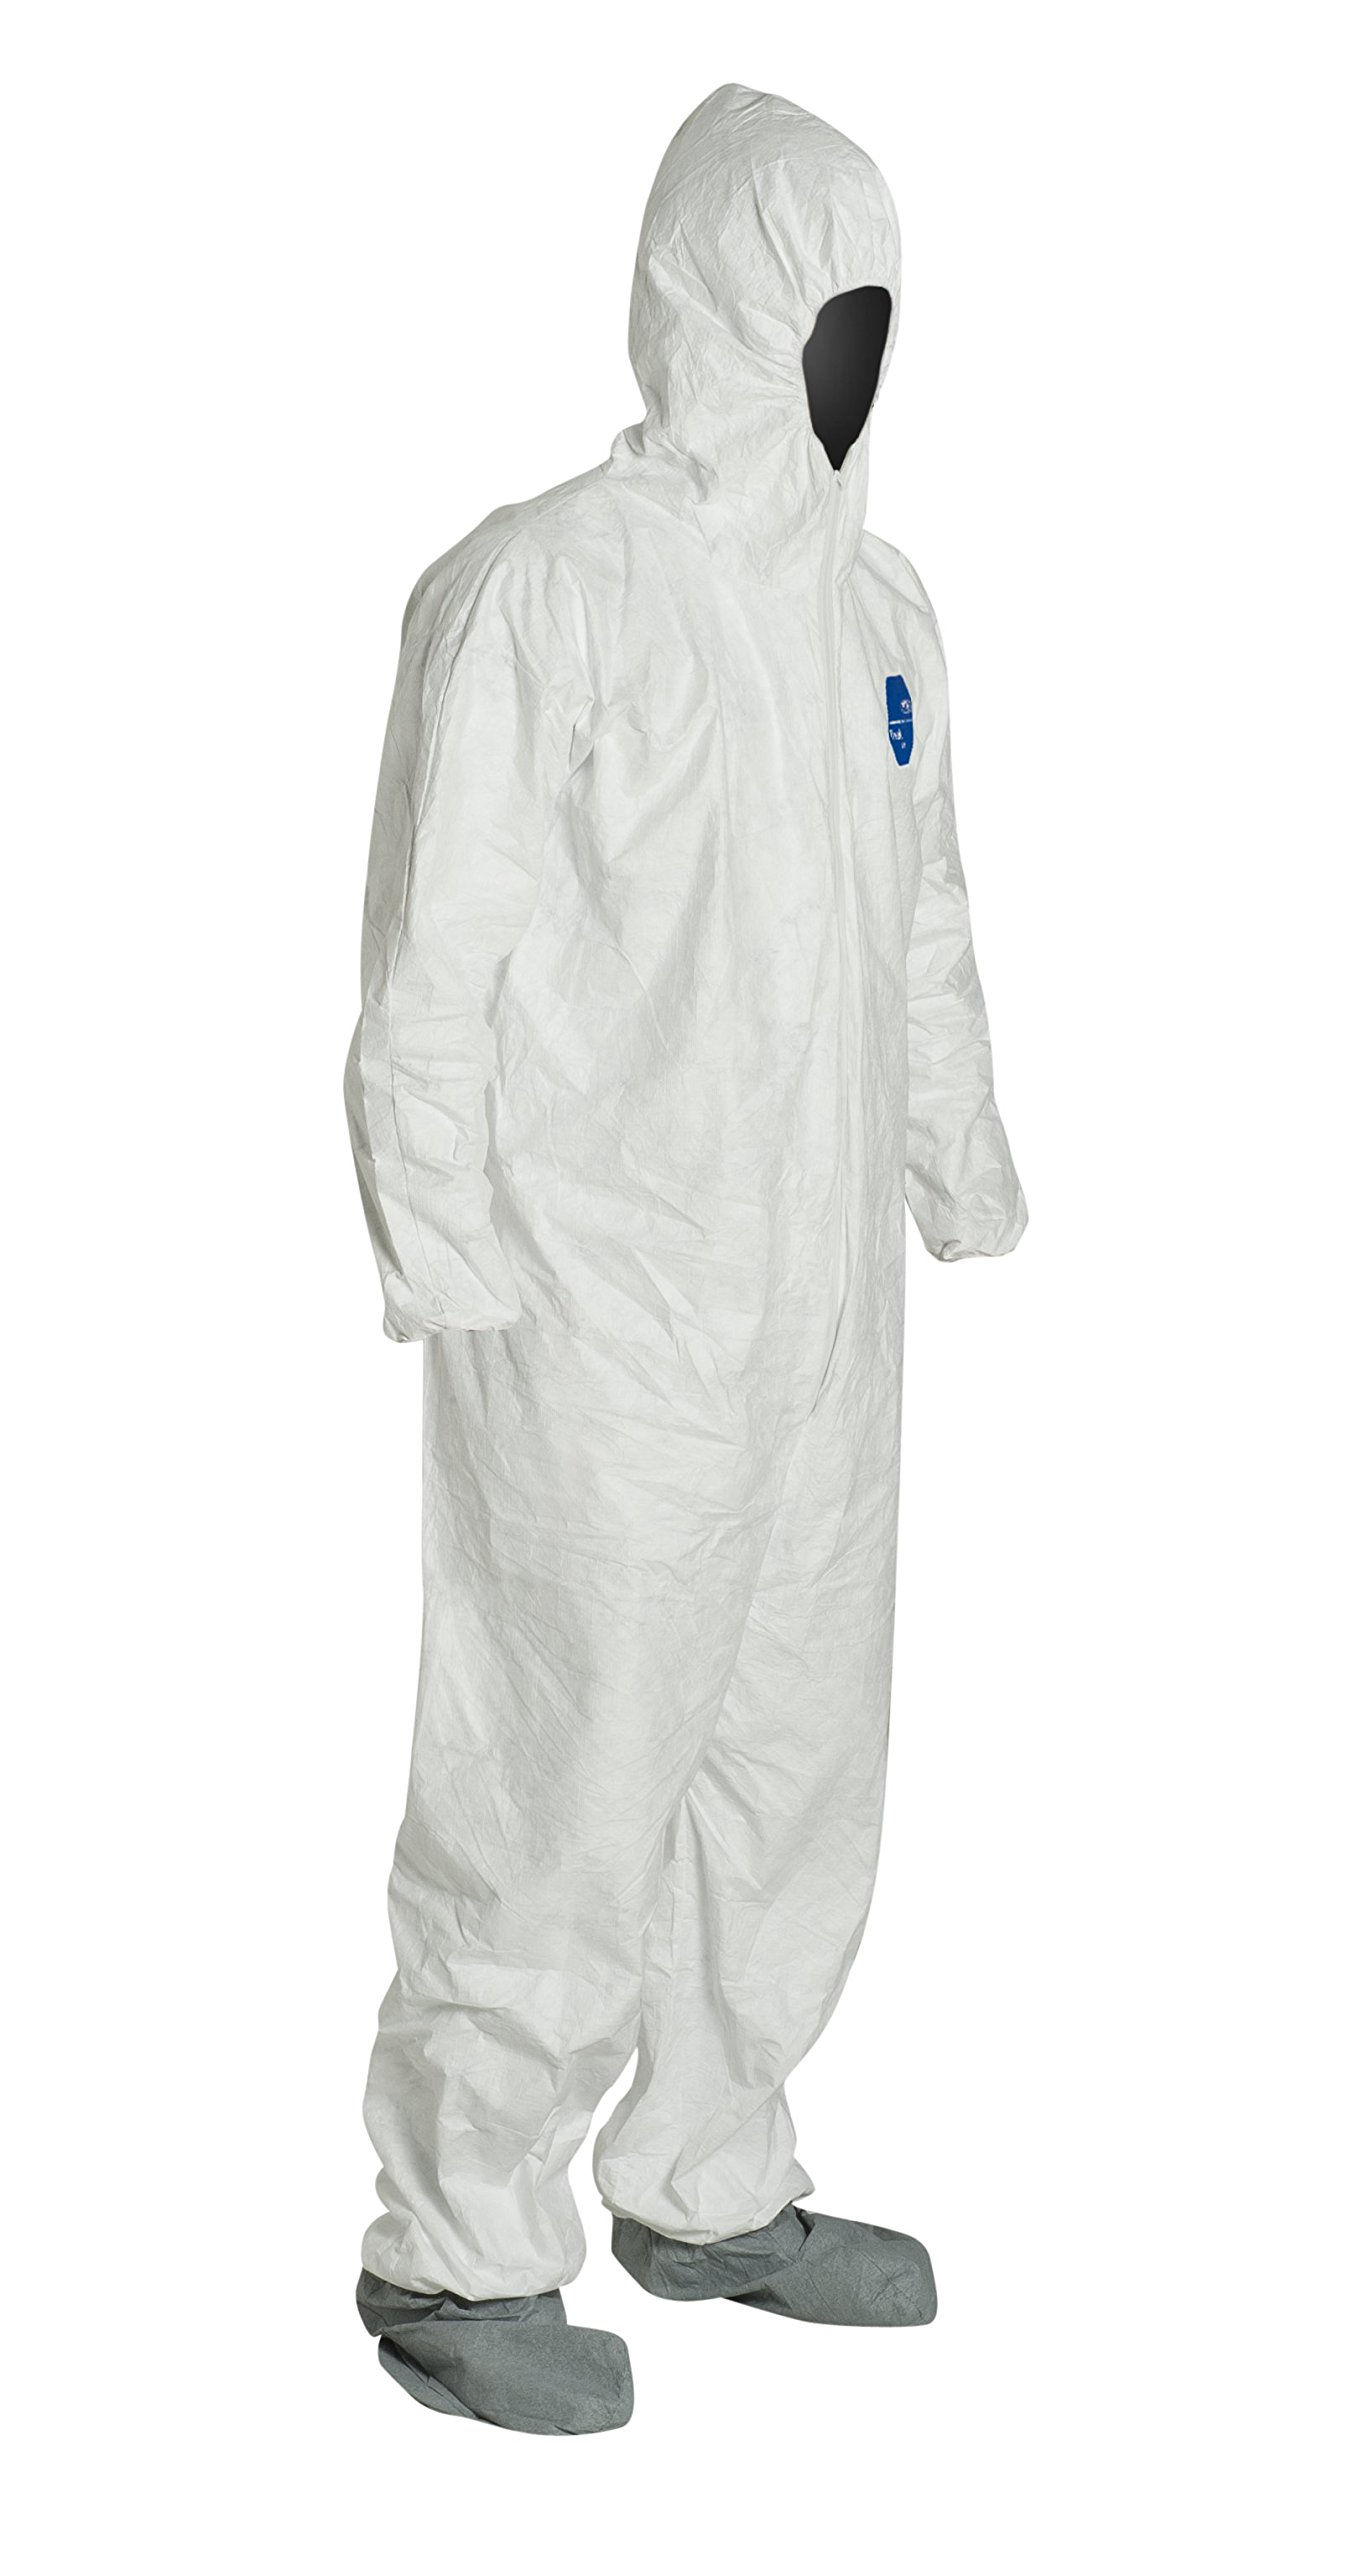 DuPont Tyvek 400 TY122S Disposable Protective Coverall with Elastic Cuffs, Attached Hood and Boots, White, 7X-Large (Pack of 25) by DuPont (Image #2)